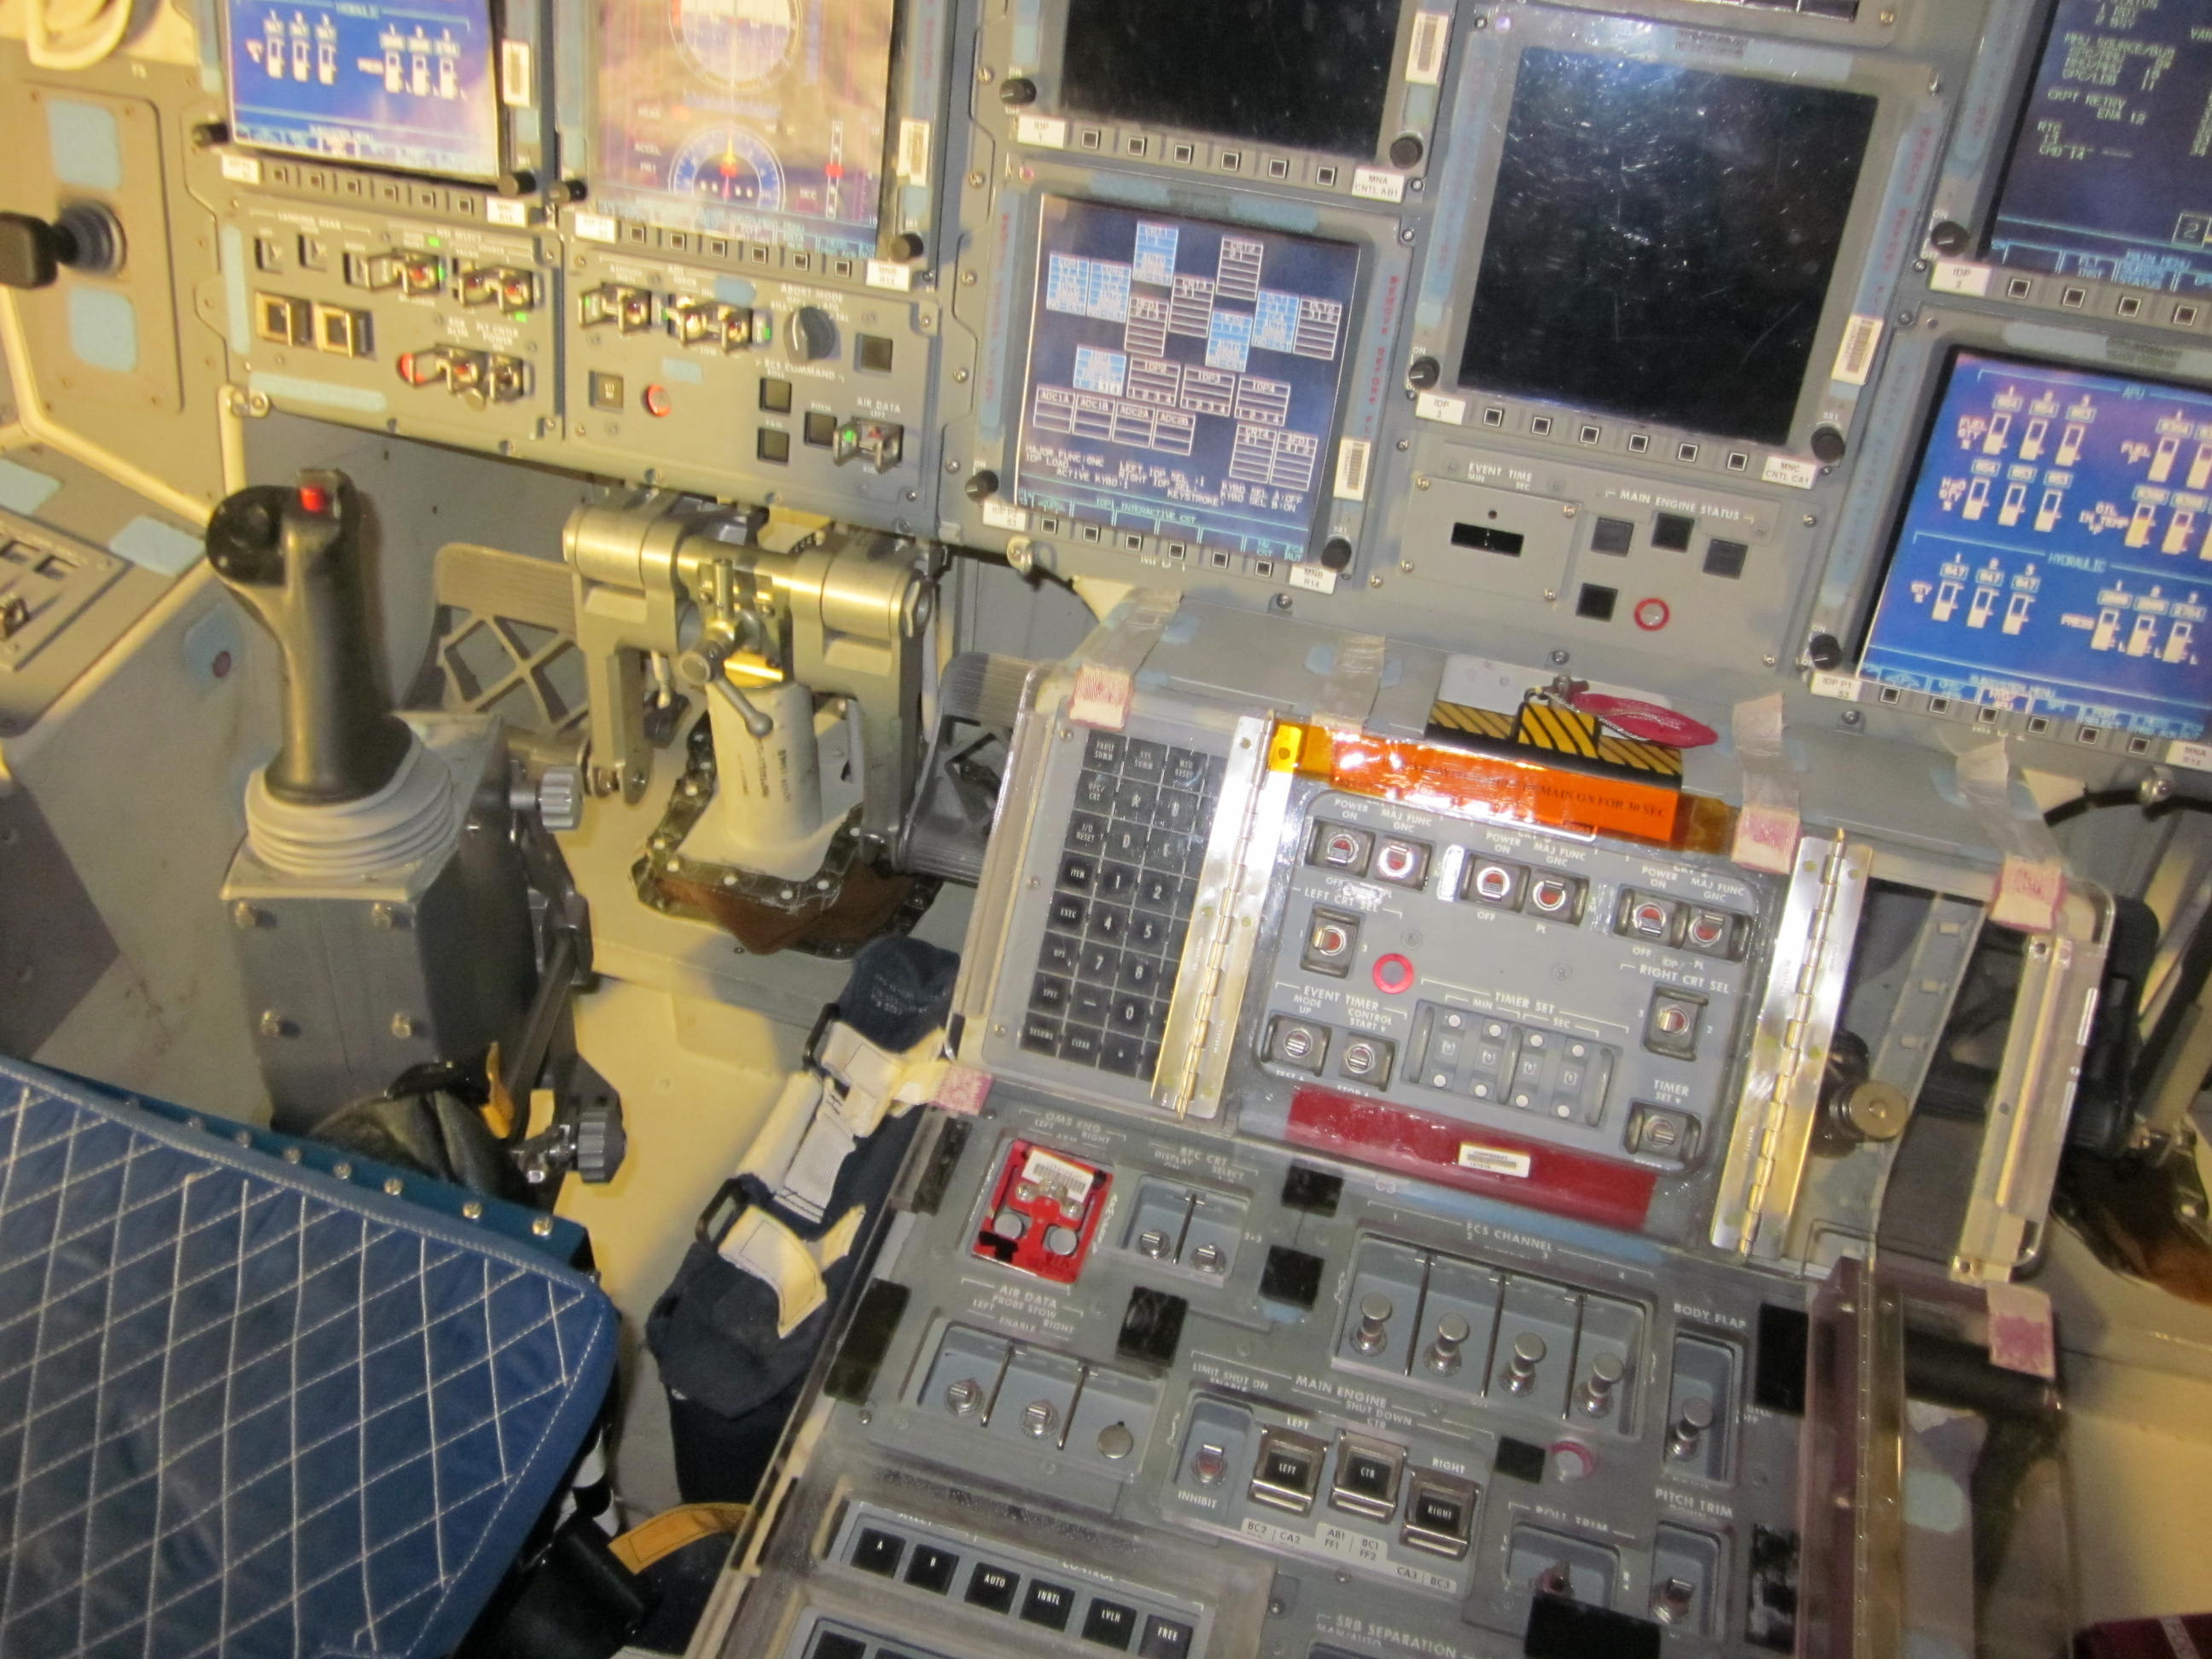 Space Shuttle Closeup: Panoramic Photos Capture Discovery's Interior